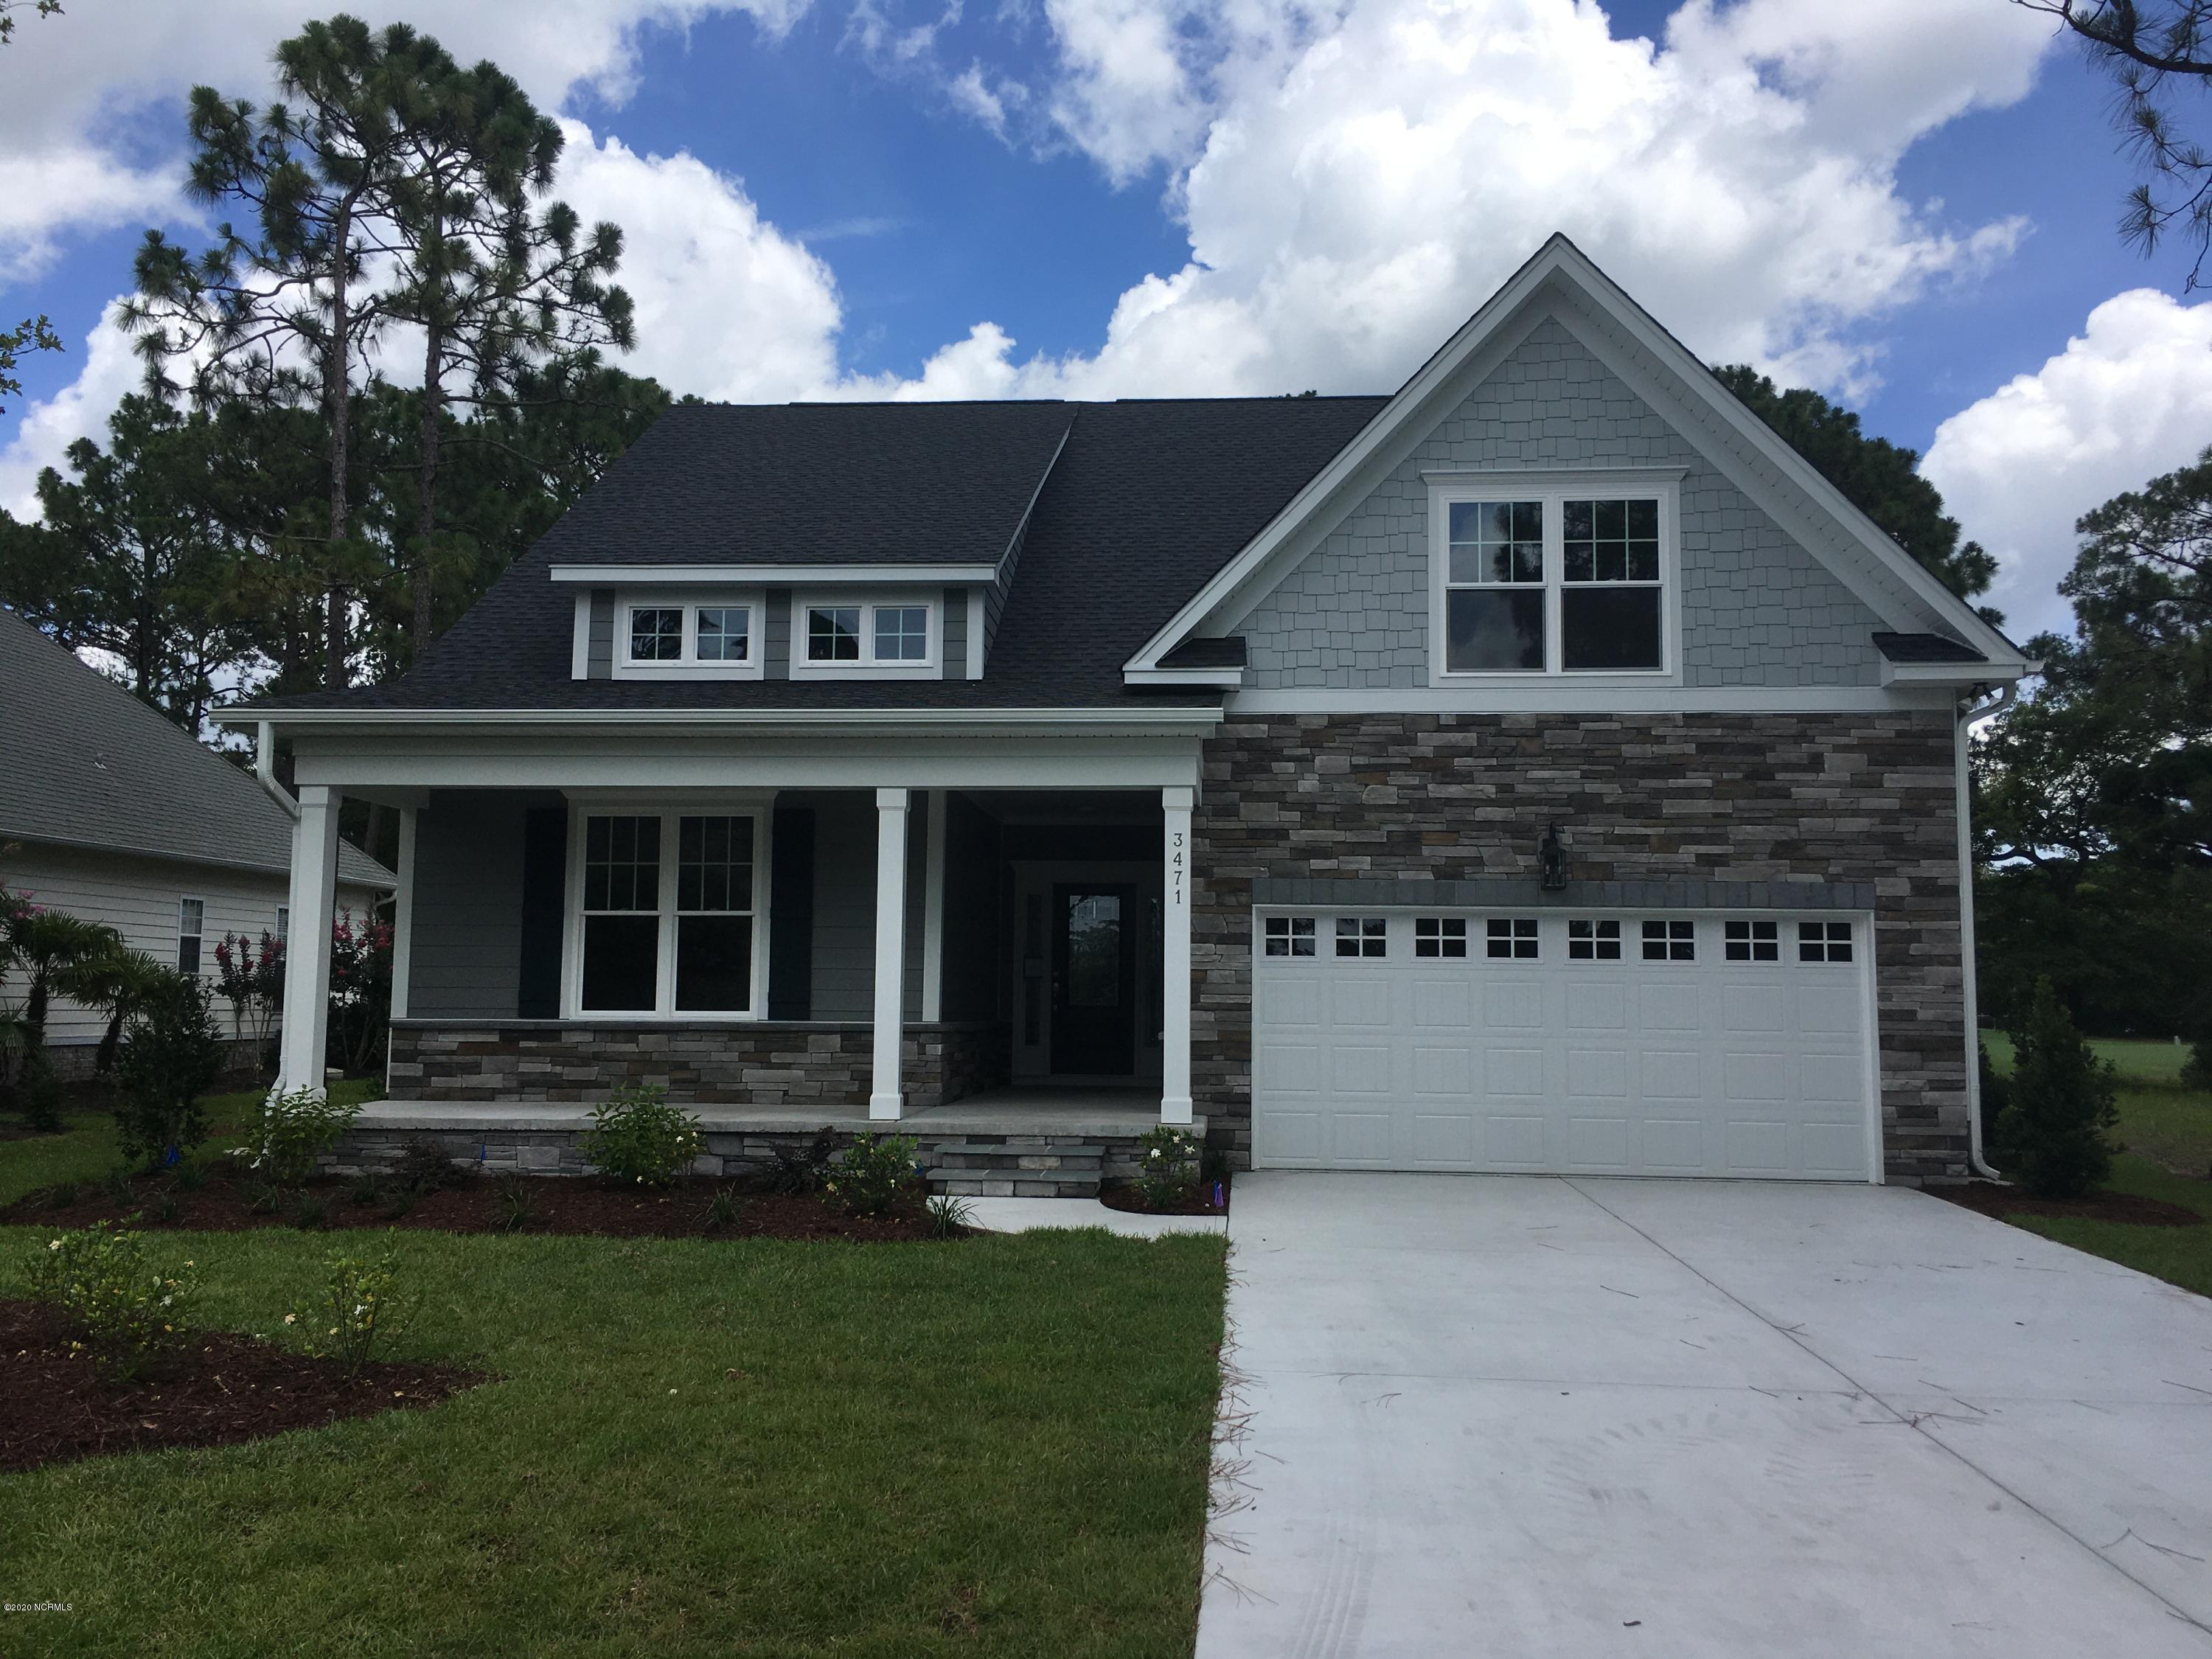 3471 Haskell Lane, Southport, North Carolina 28461, 3 Bedrooms Bedrooms, ,3 BathroomsBathrooms,Residential,For Sale,Haskell,100226682